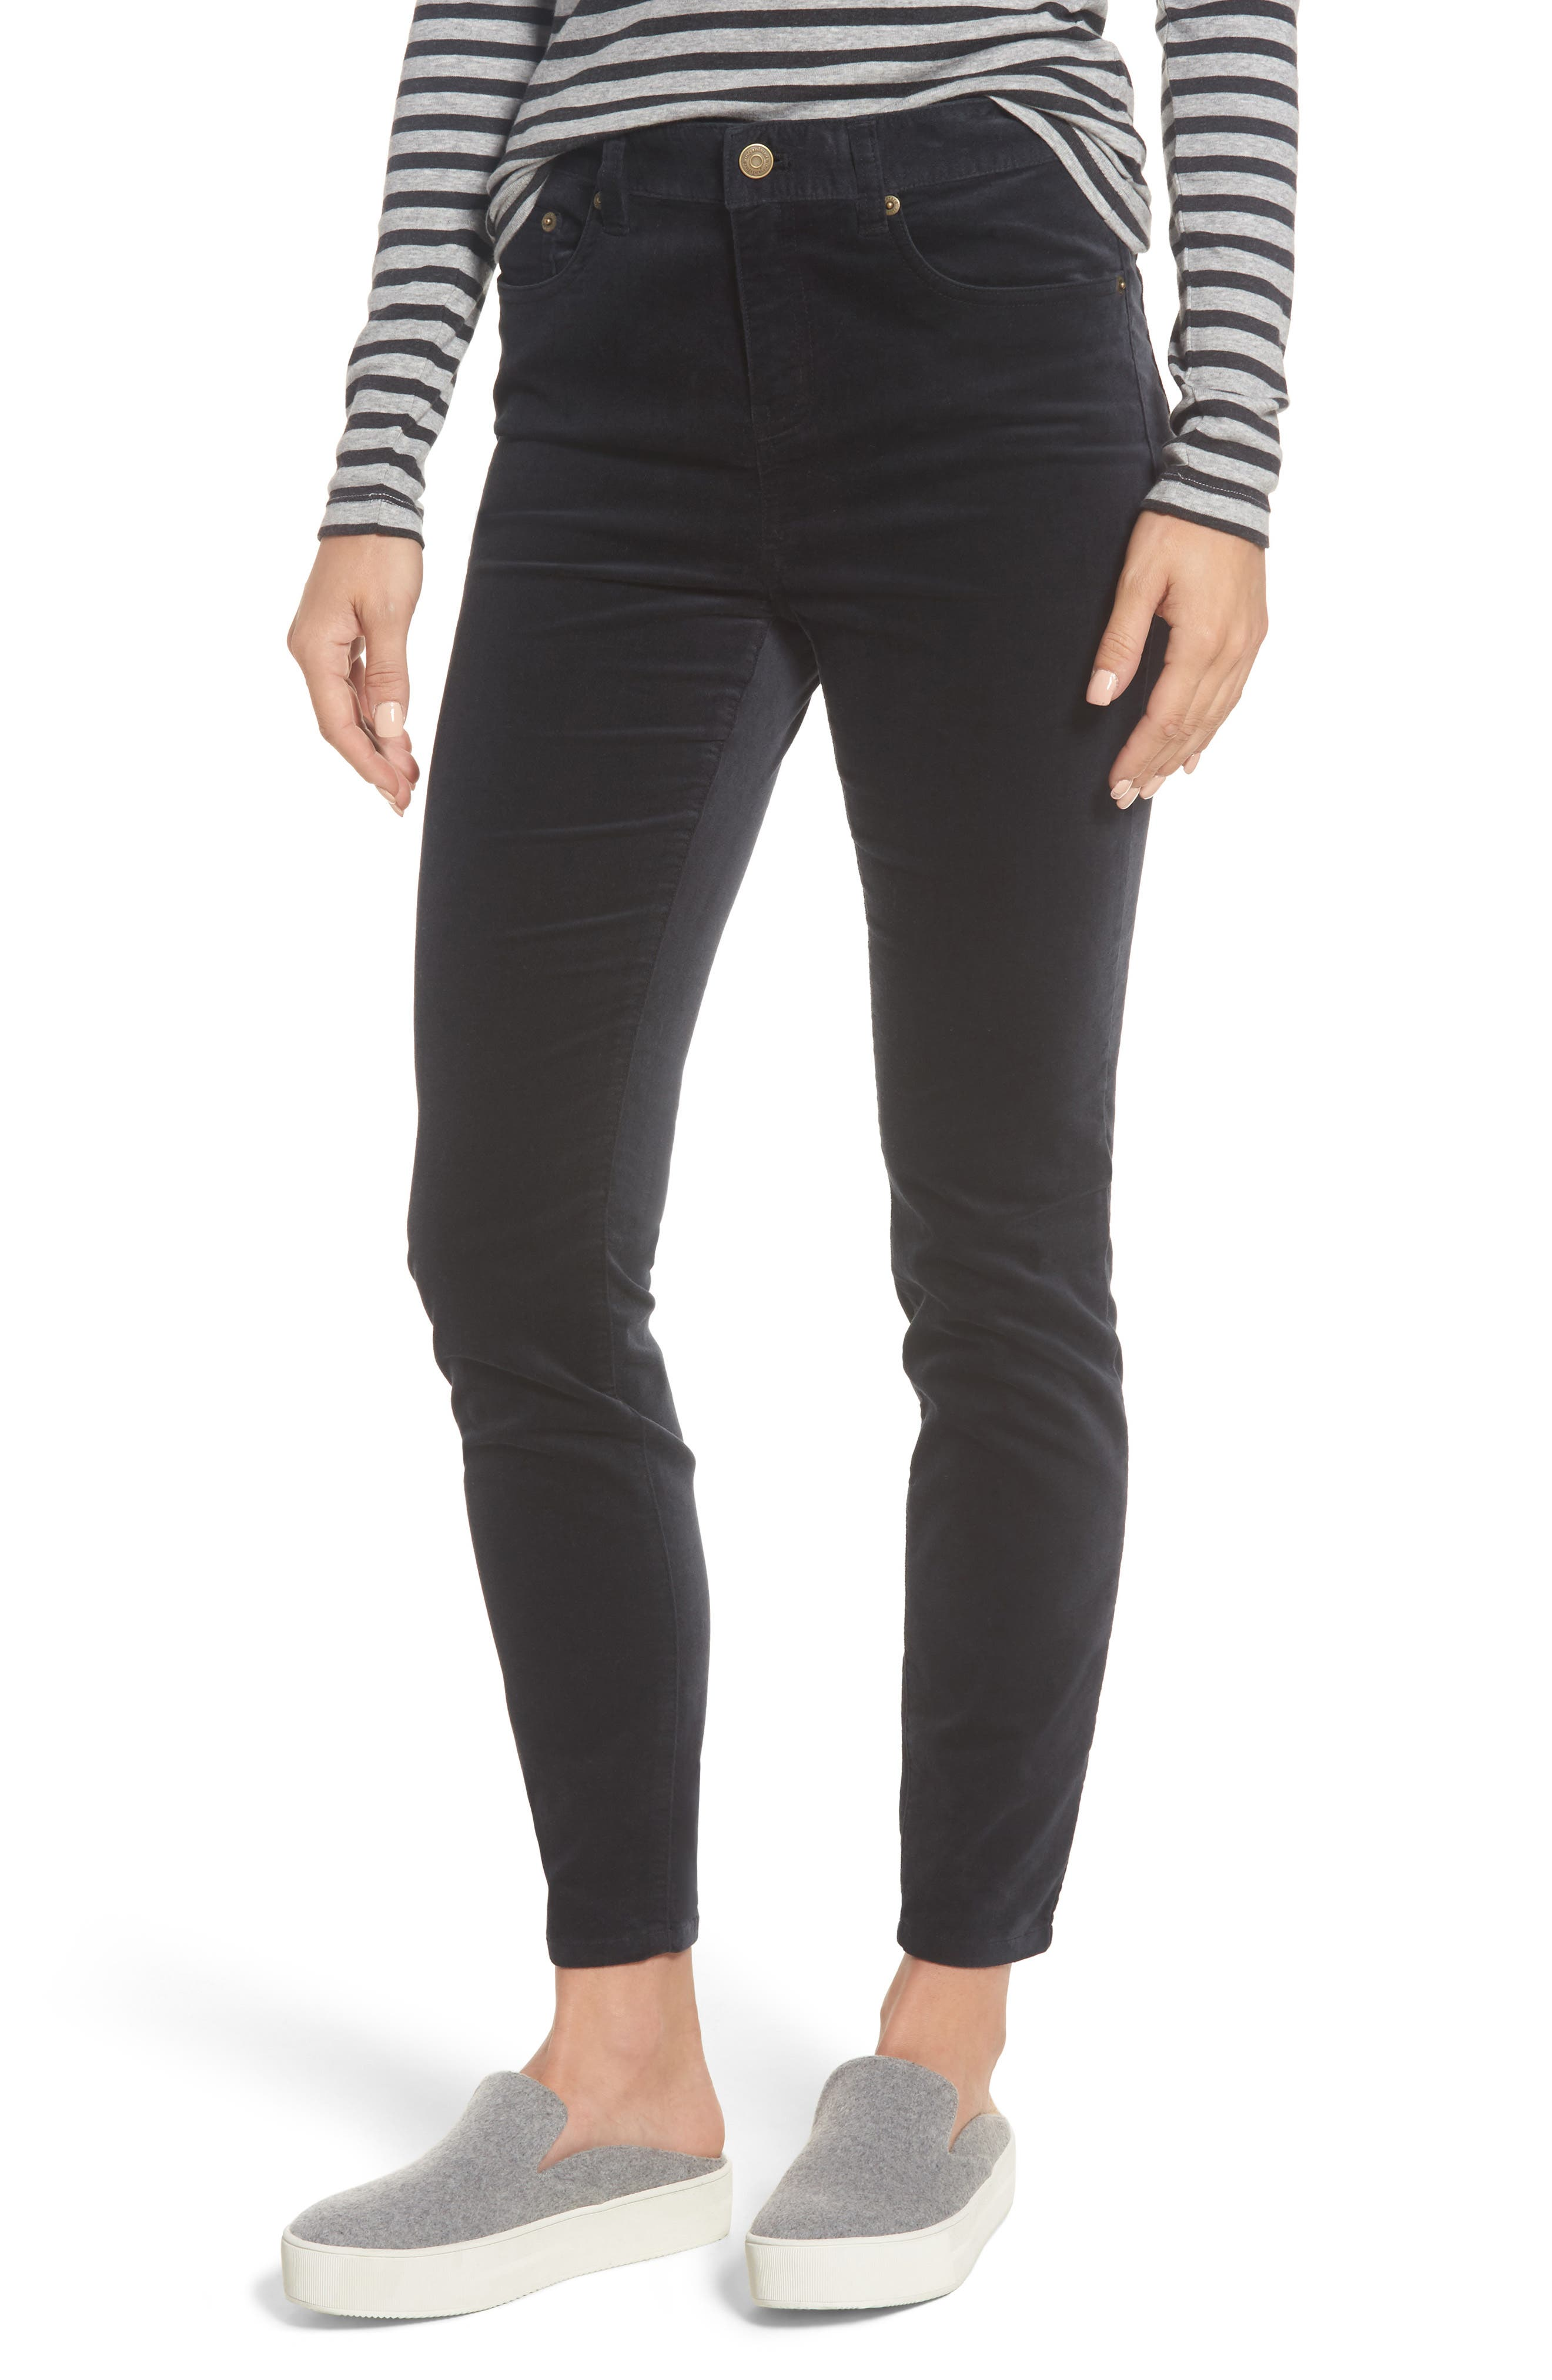 Velvet Skinny Jeans,                         Main,                         color, Jet Black